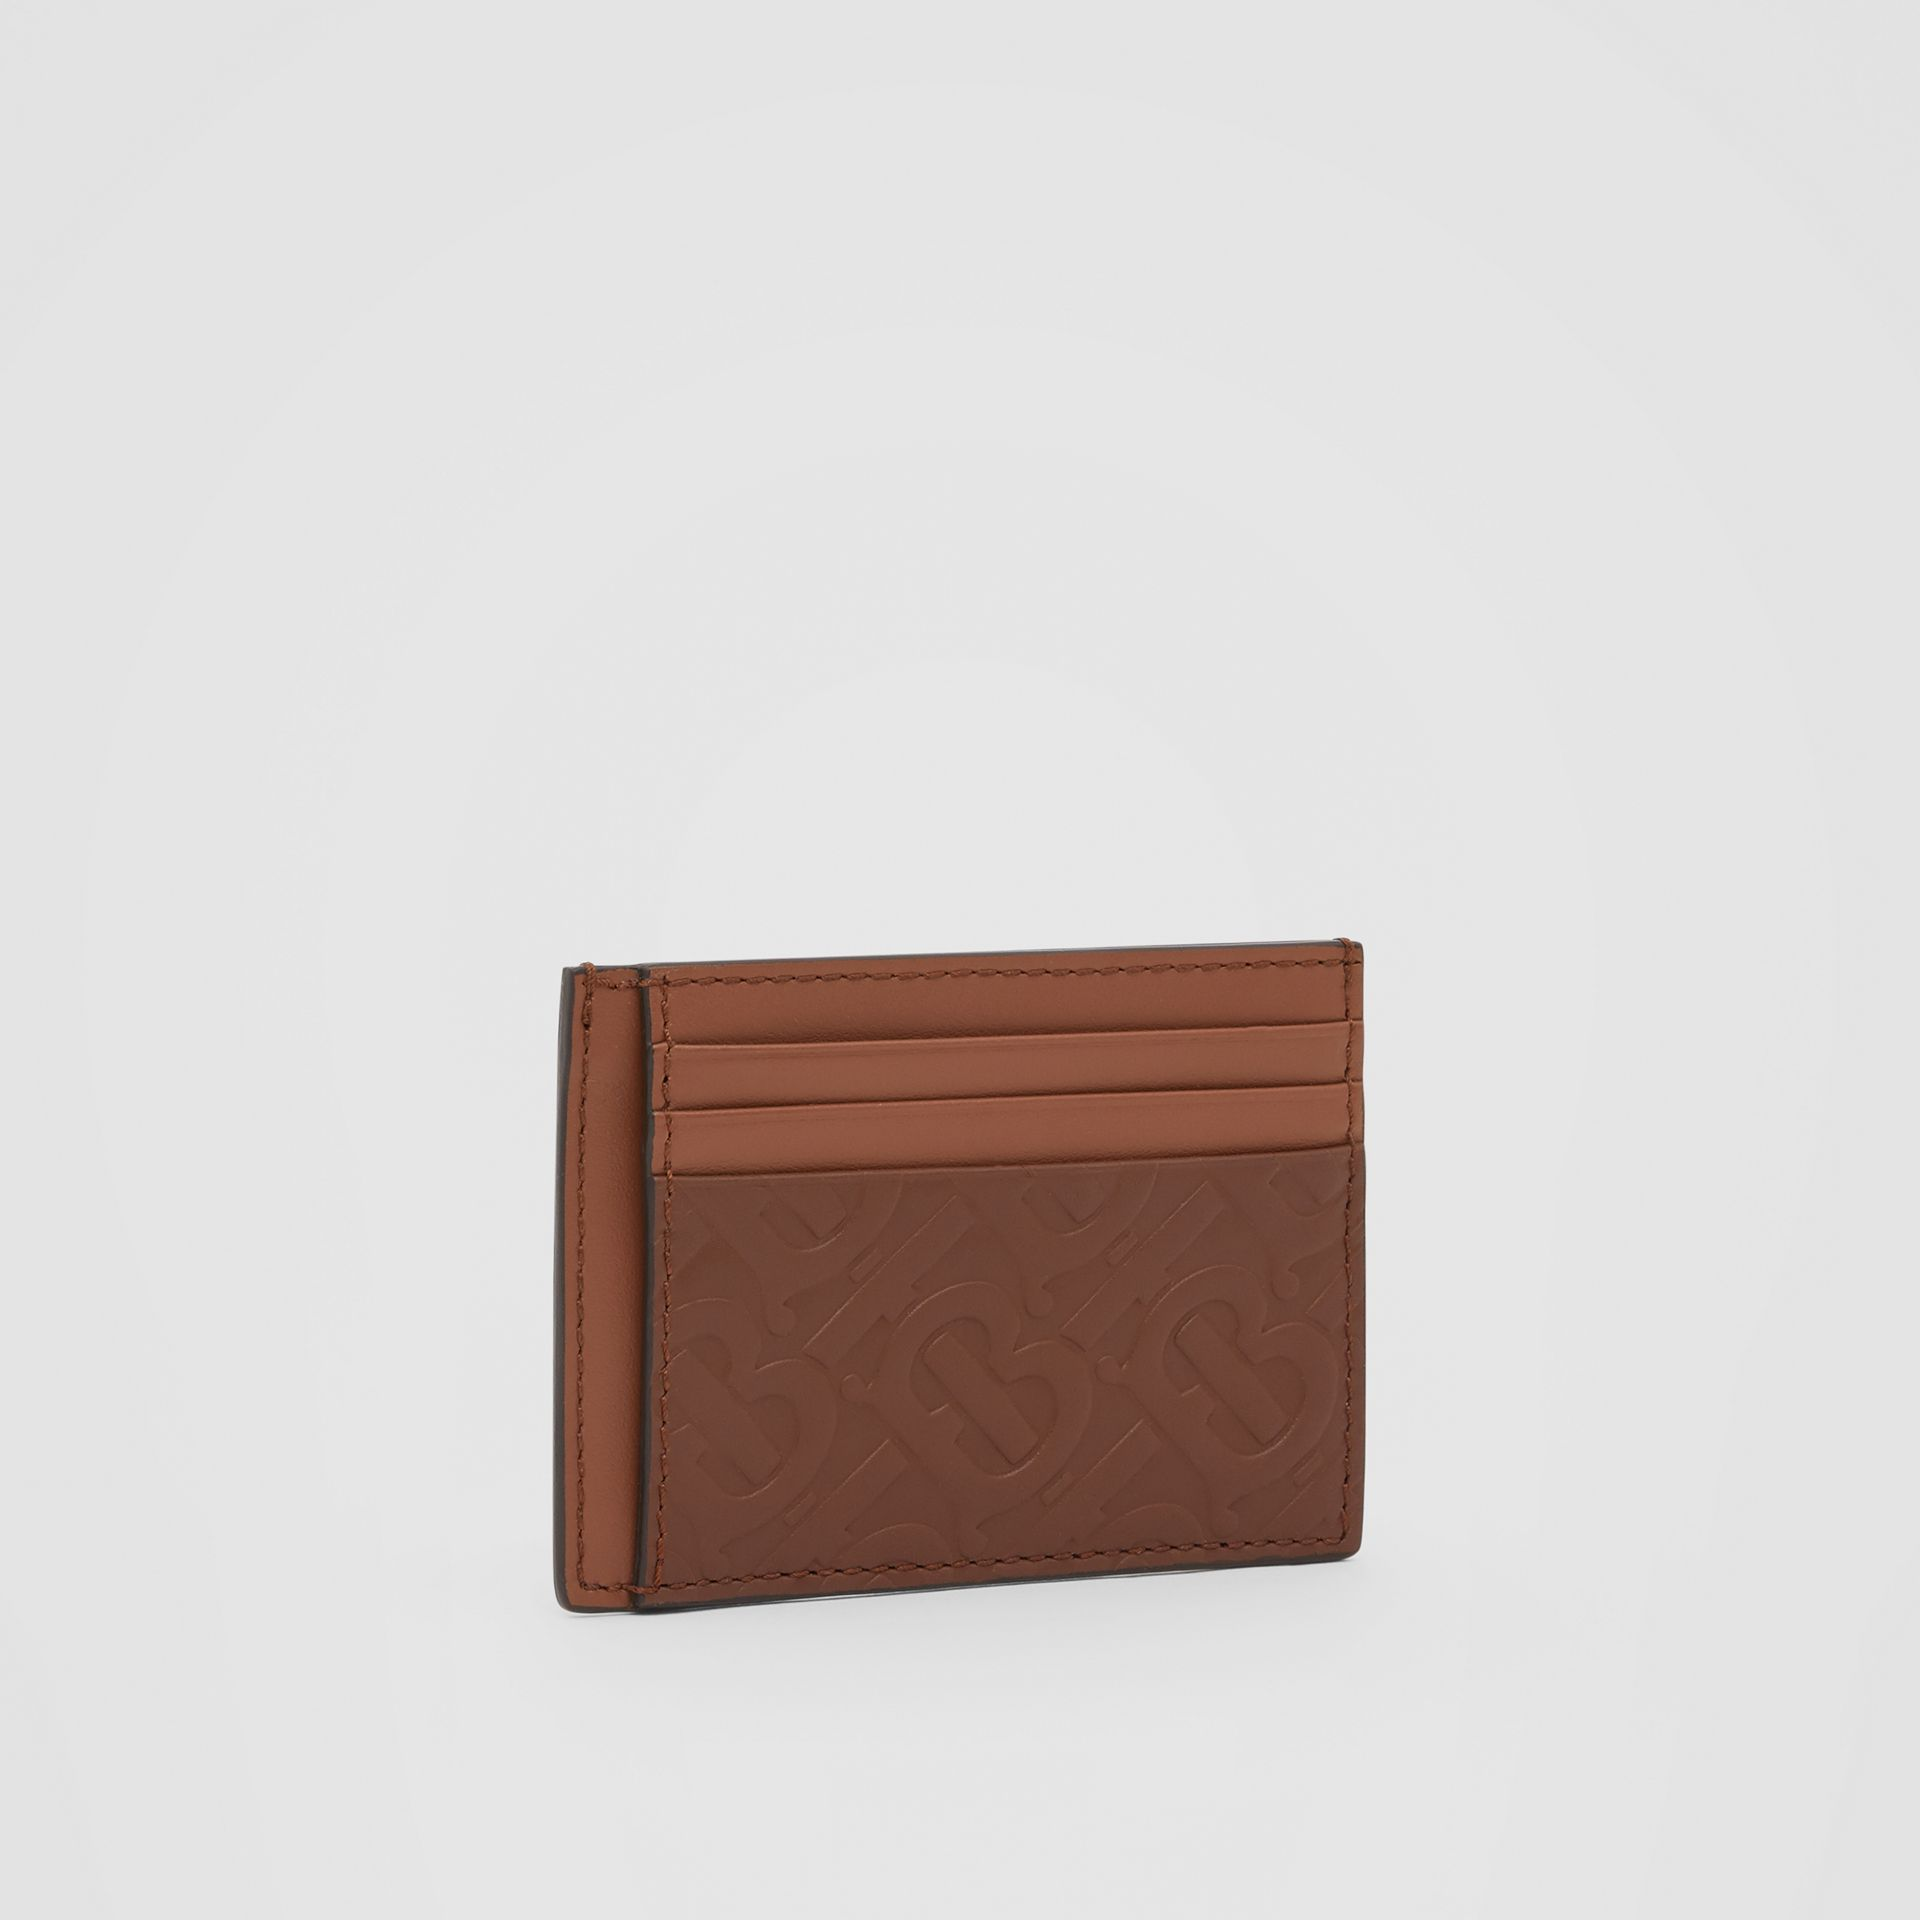 Monogram Leather Money Clip Card Case in Dark Tan - Men | Burberry United States - gallery image 3